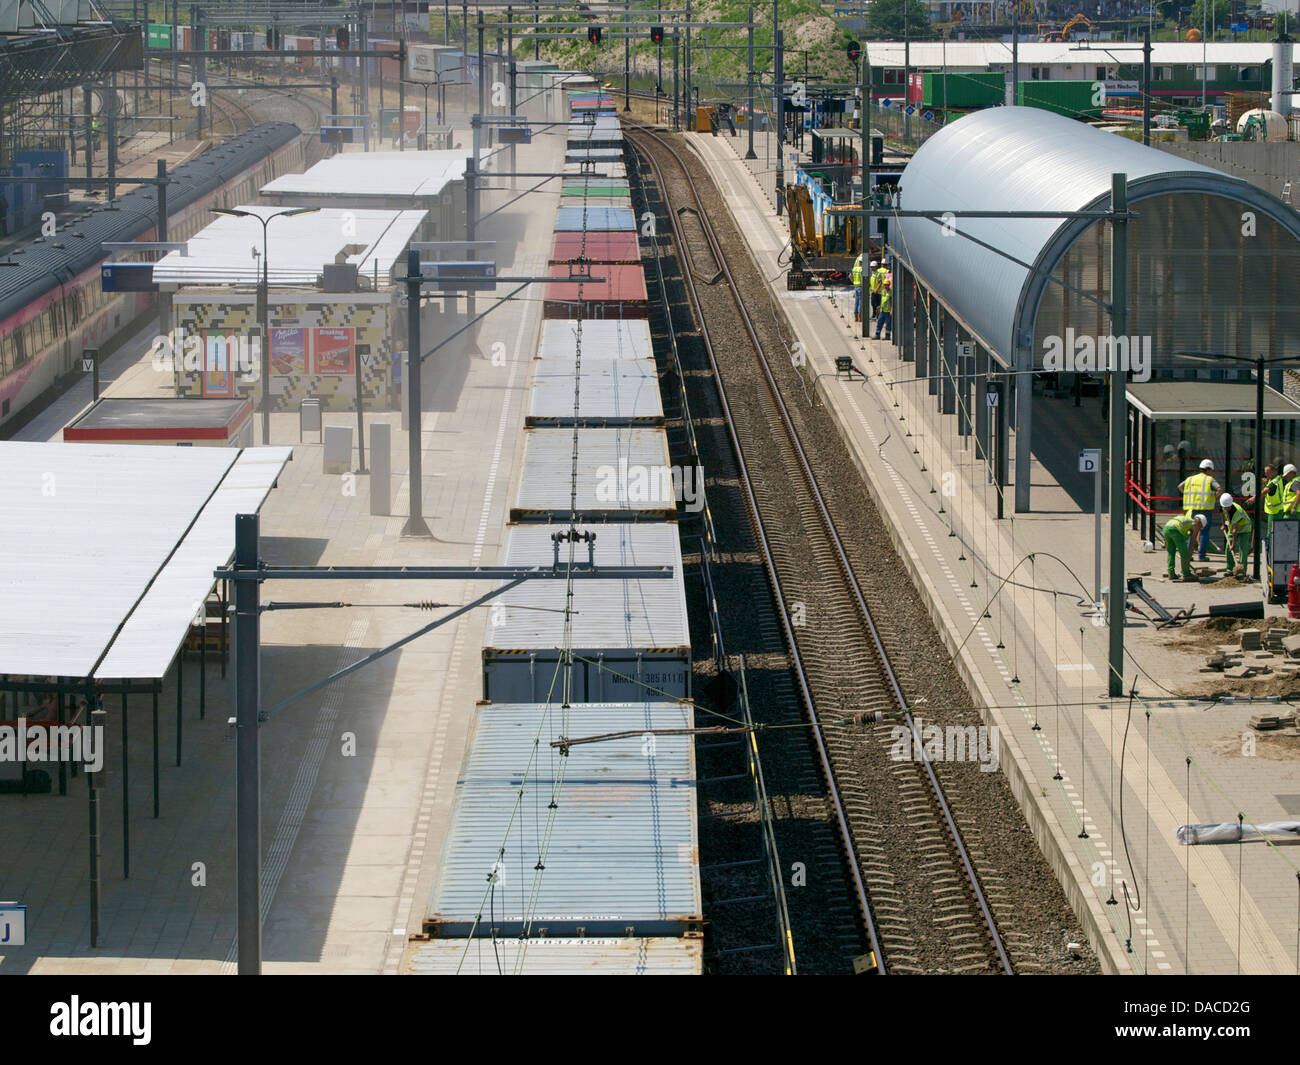 Very long freight train carrying containers going through station Breda, the Netherlands - Stock Image